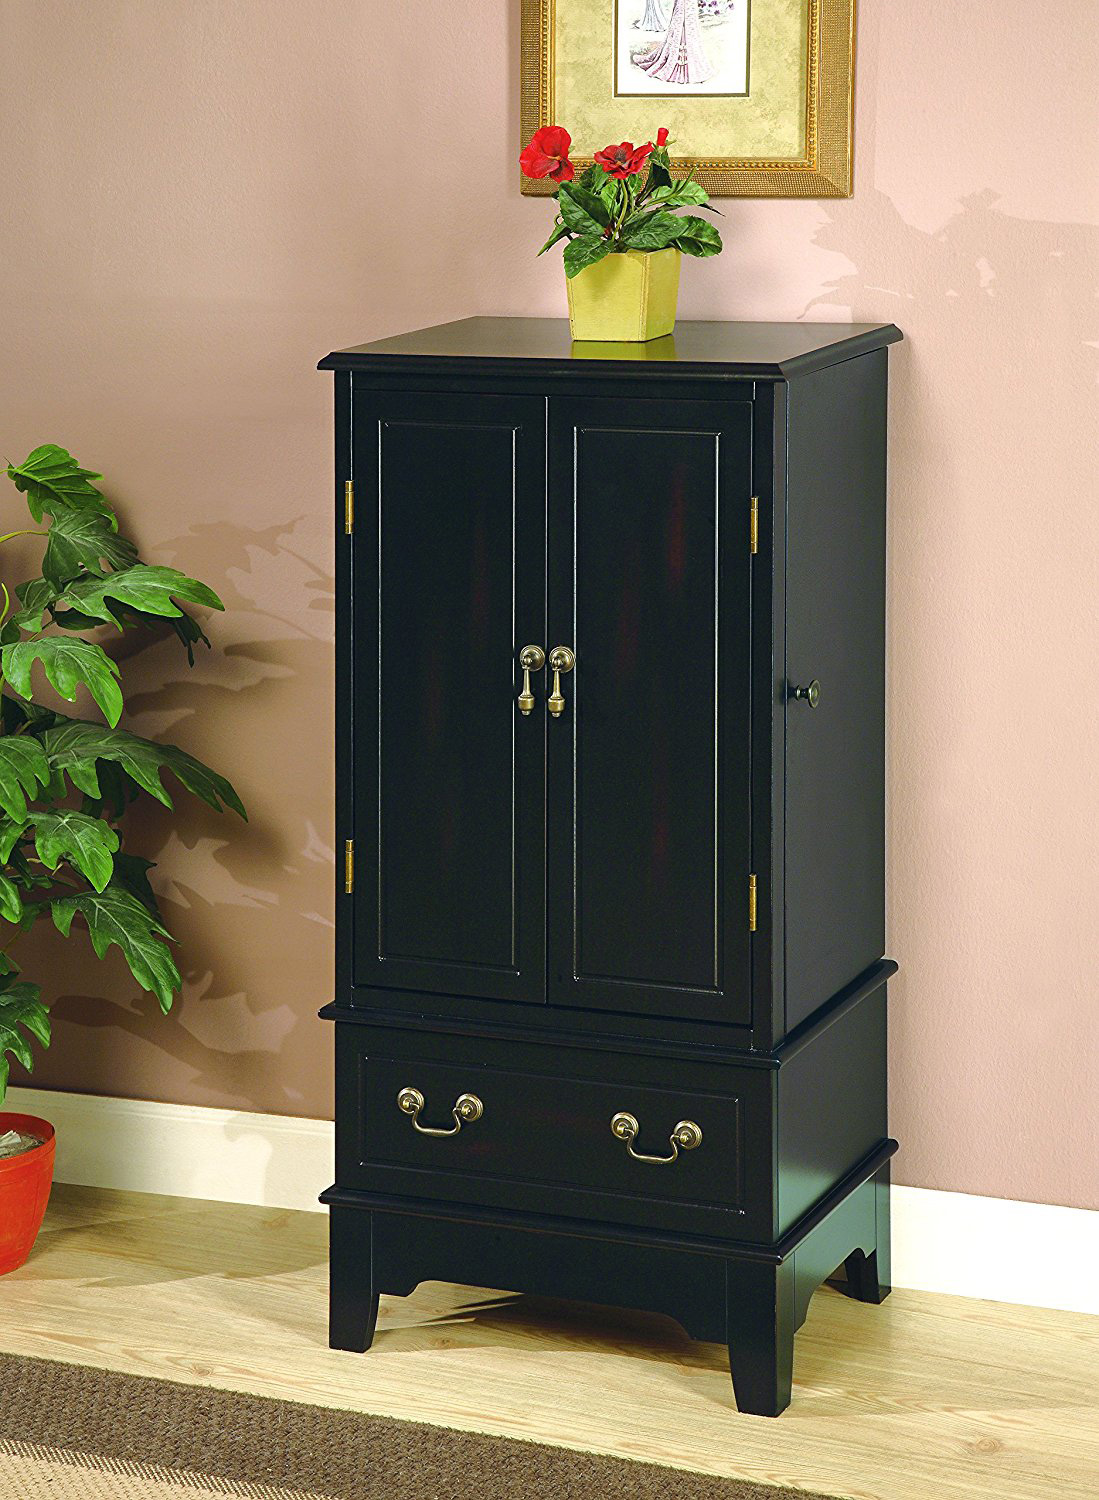 Cabinet Style Black Jewelry Armoire